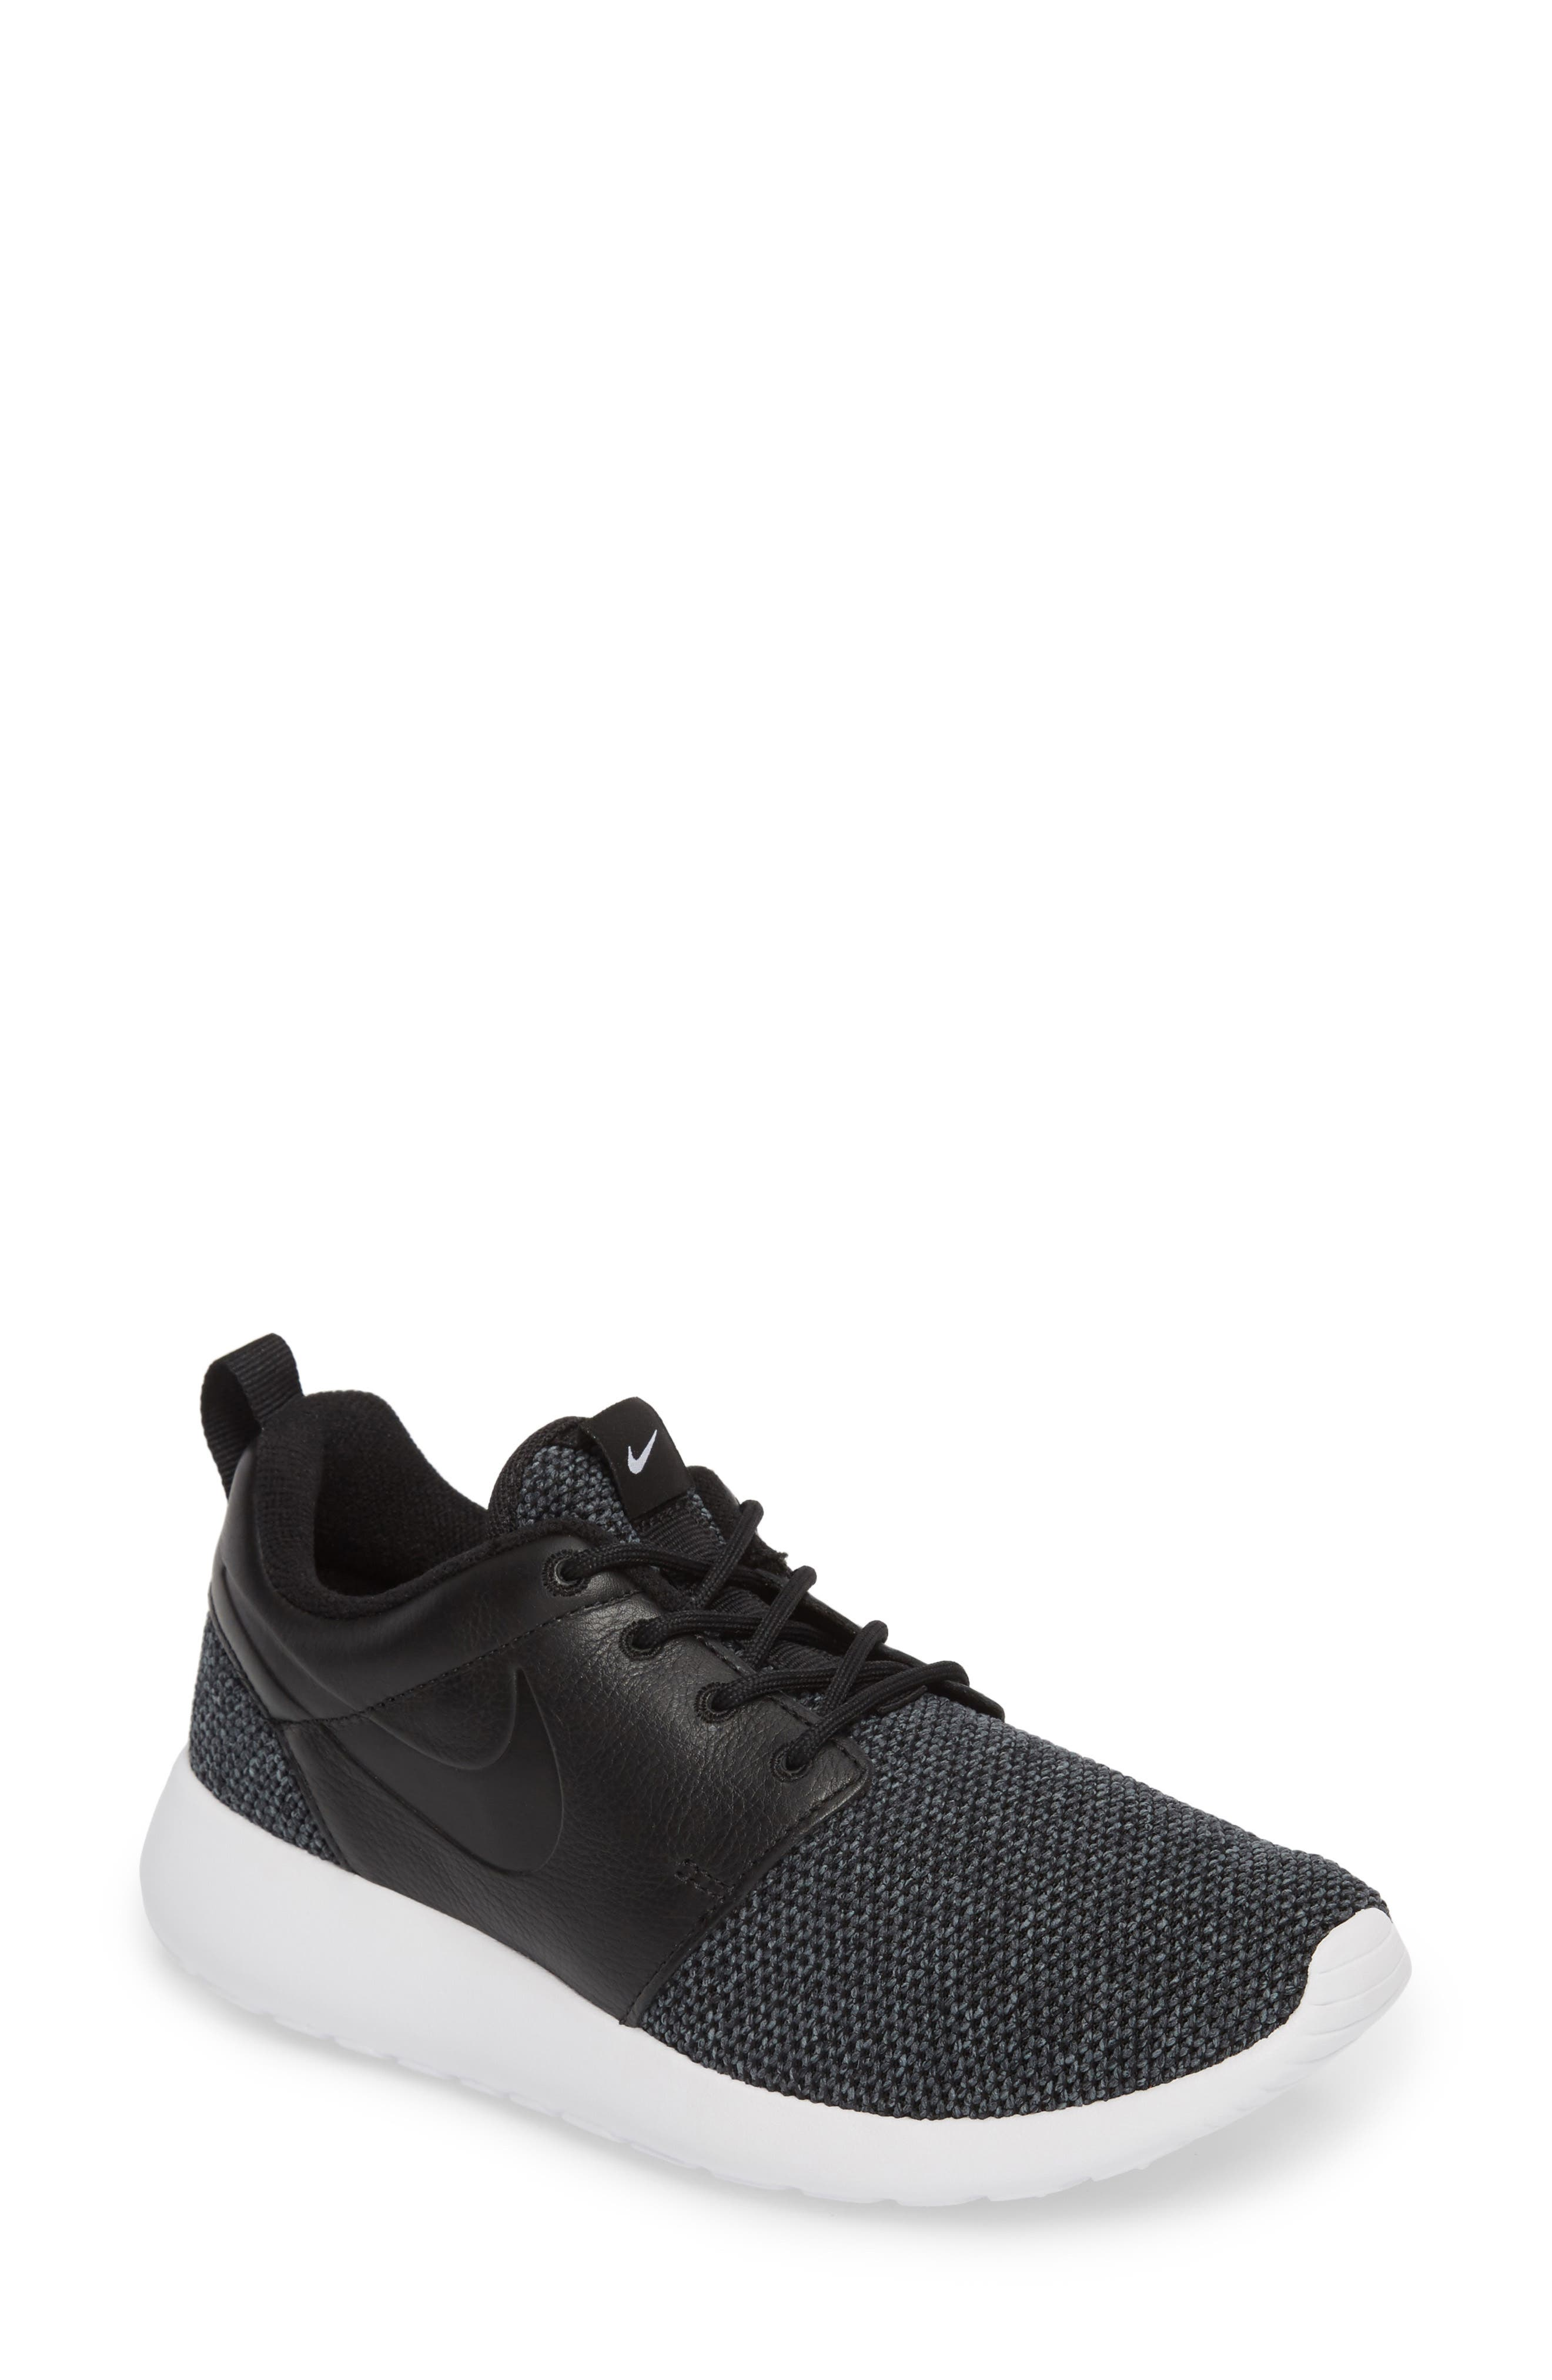 Nike Roshe One Knit Sneaker Women